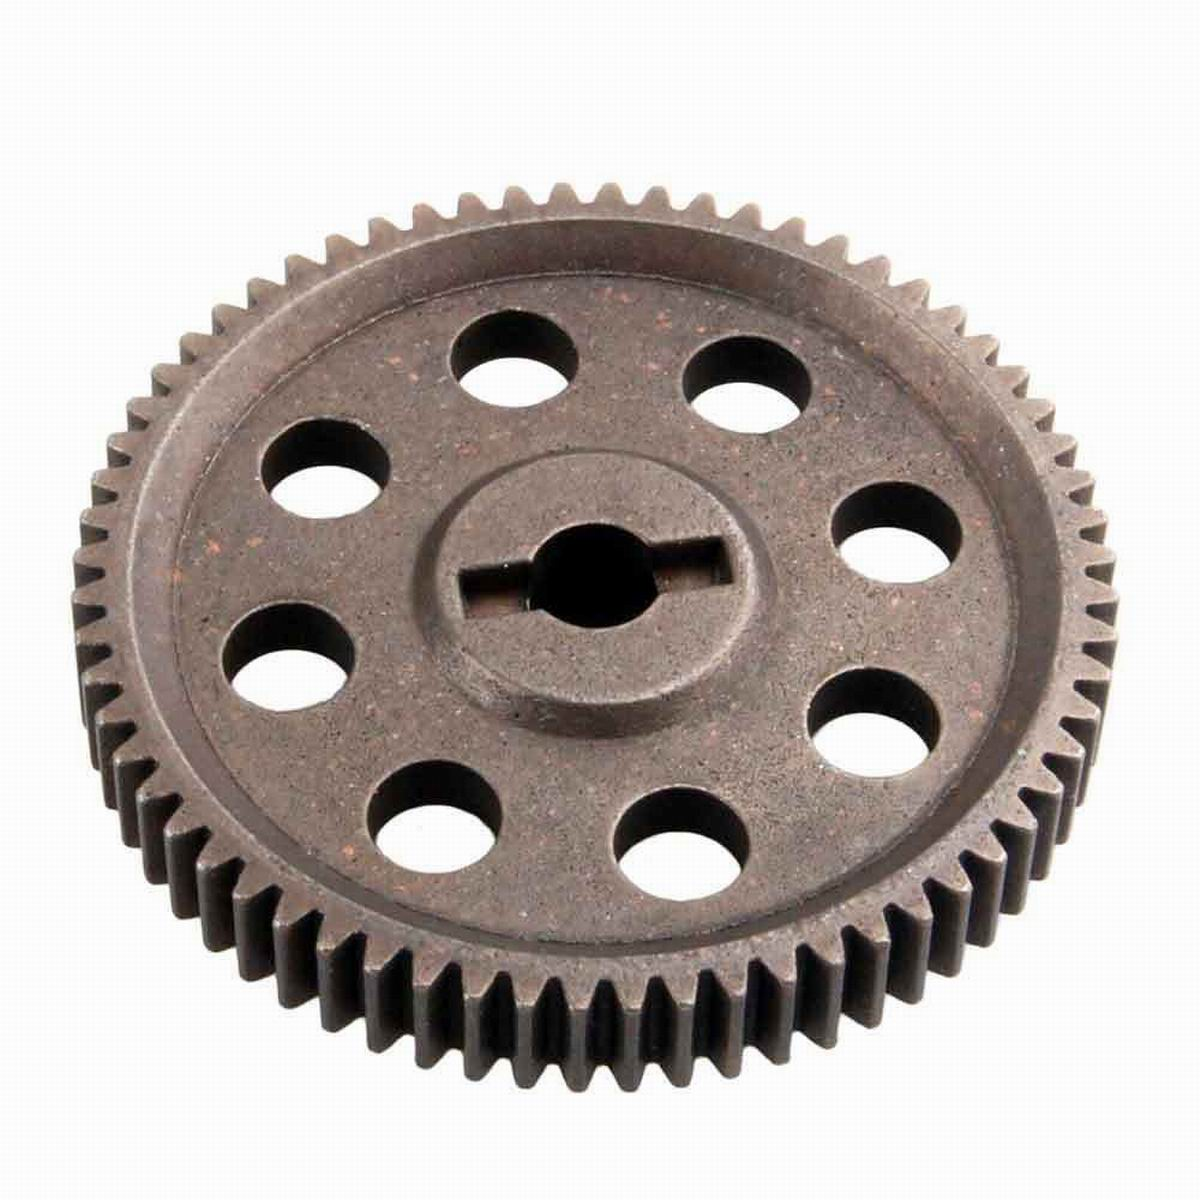 1//10 RC Car Spare Parts 64T Diff Main Gear+17T Motor Gear for HSP Buggy Accs